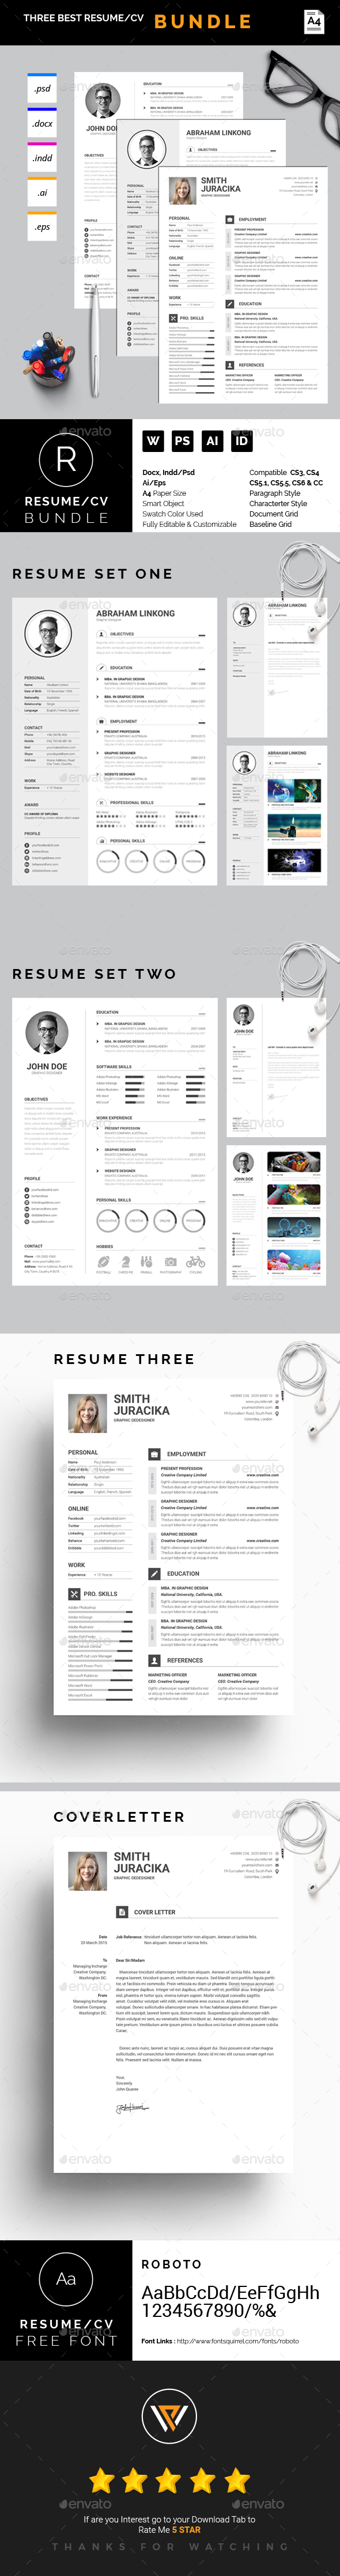 Best Resume / CV Template Bundle PSD, Vector EPS, InDesign INDD, AI ...